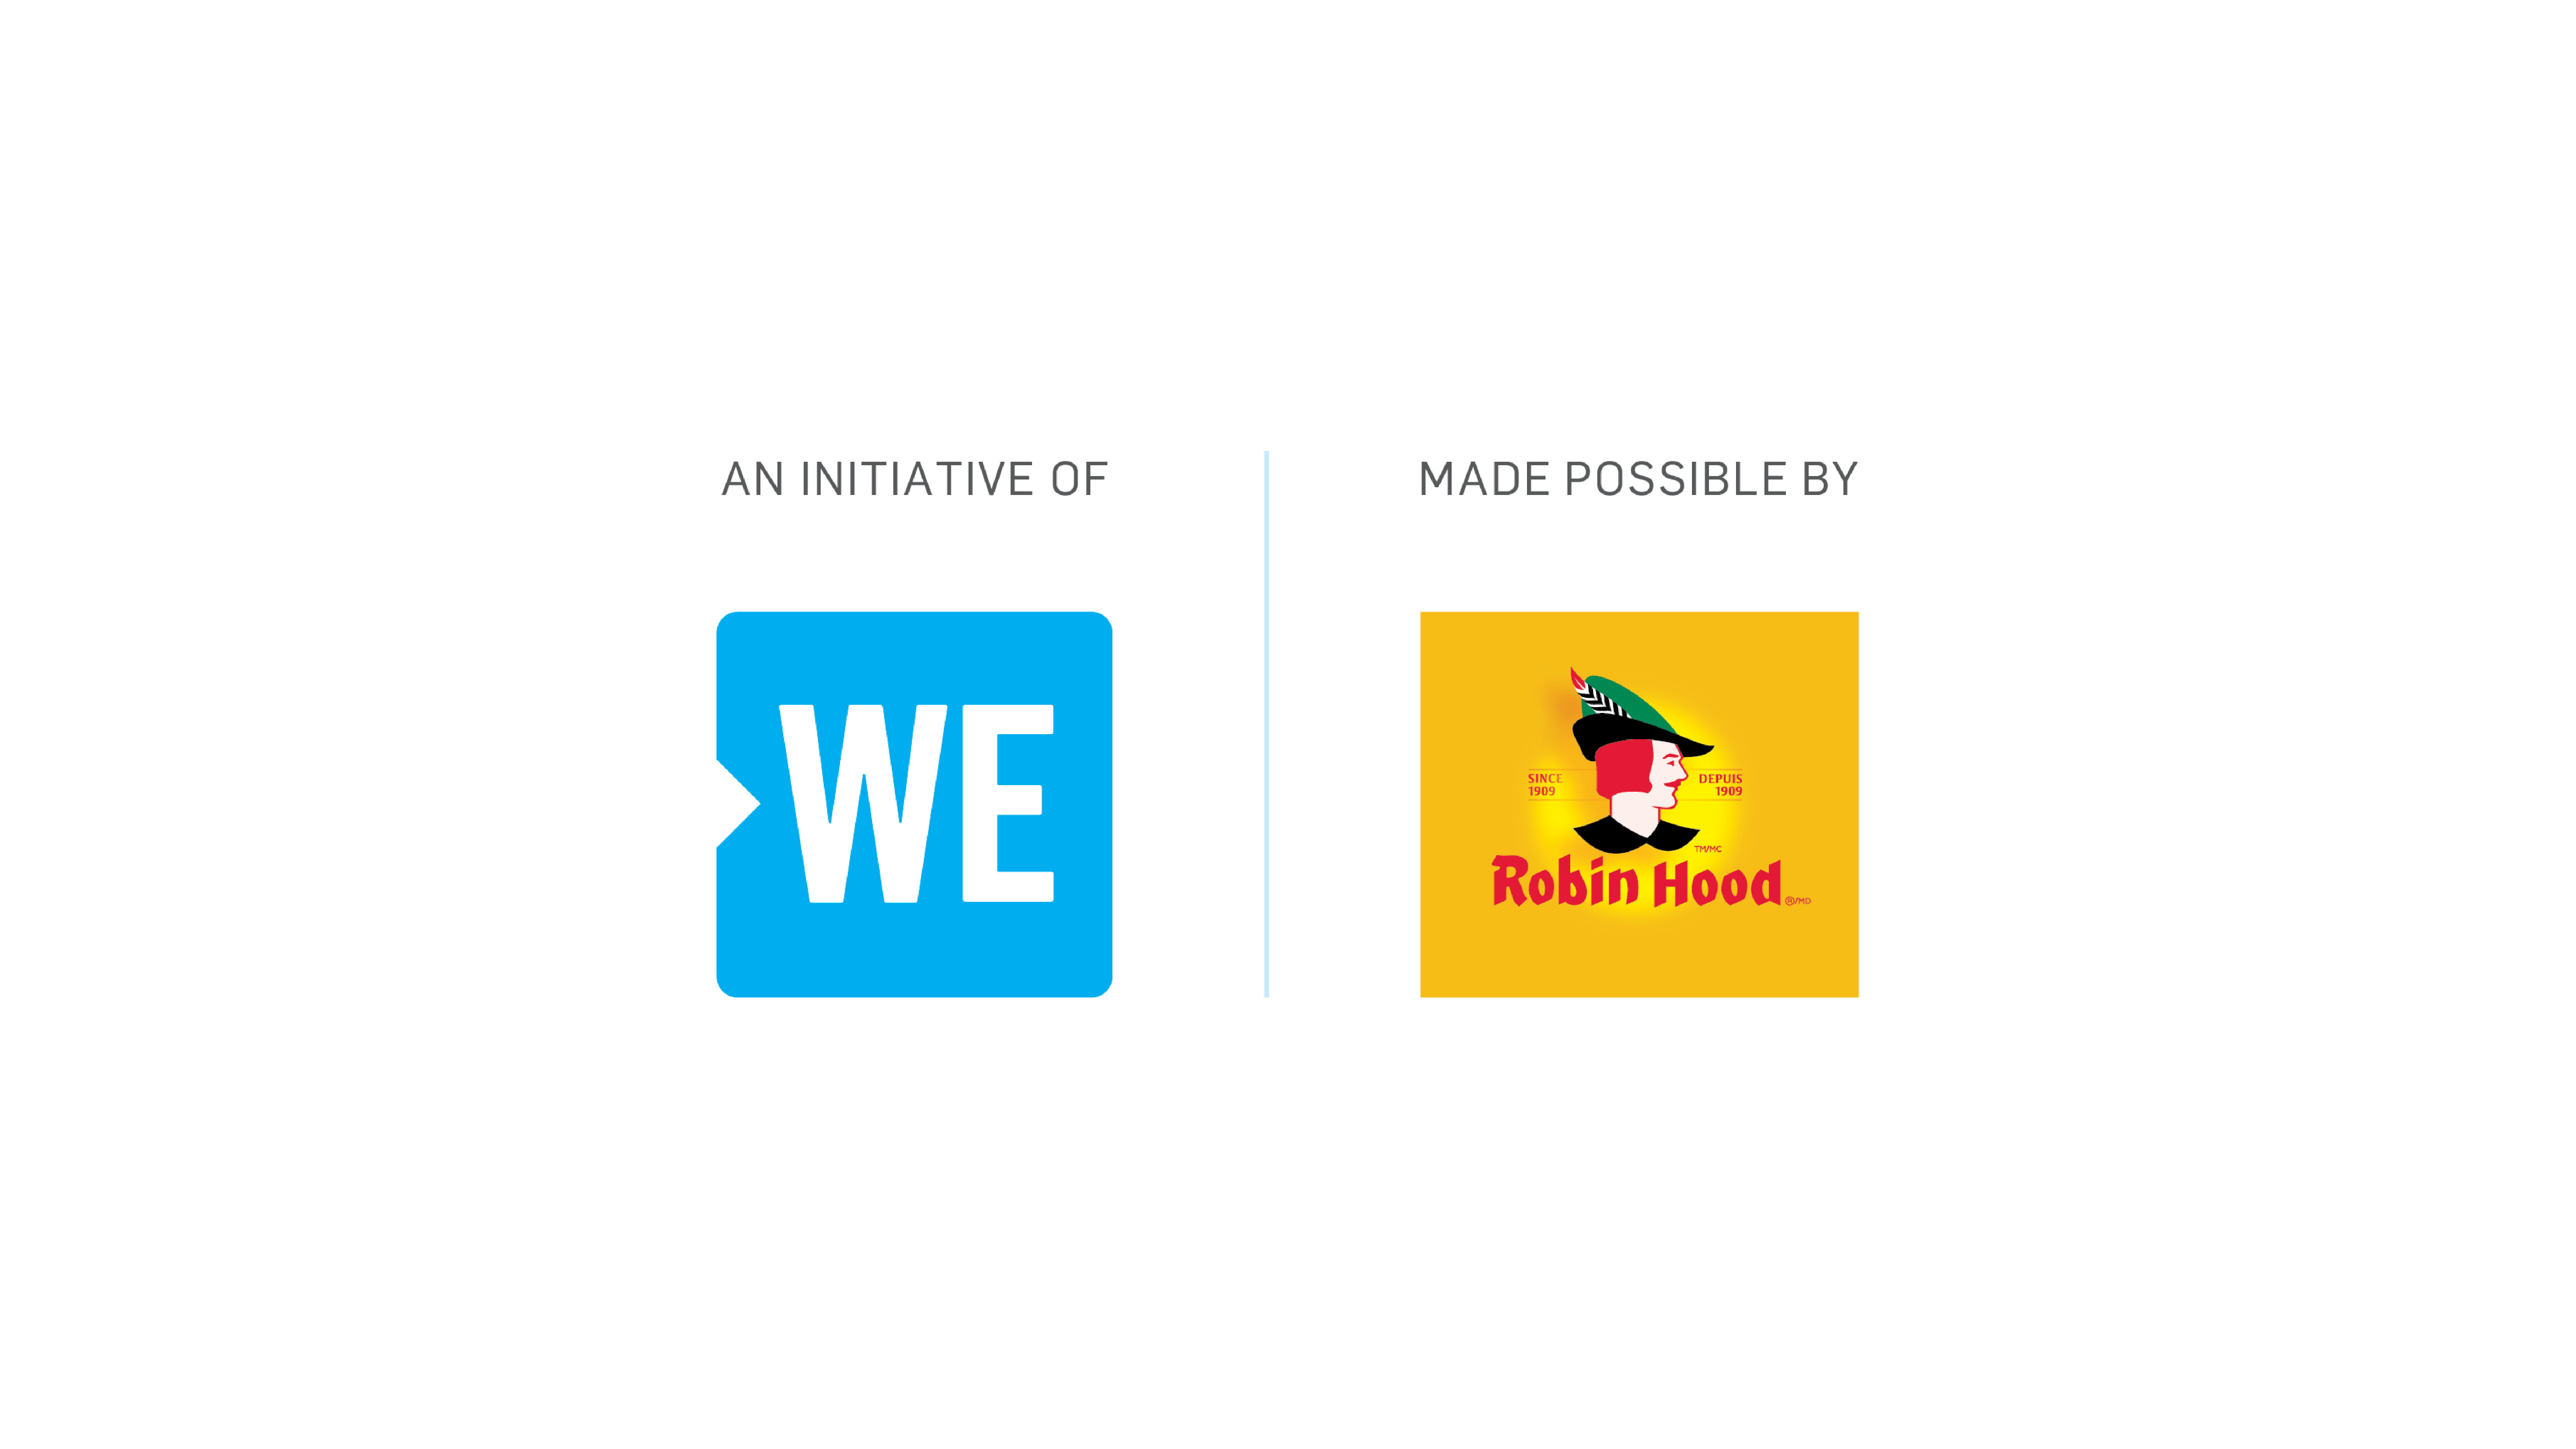 An initiative of WE | Made possible by Robin Hood